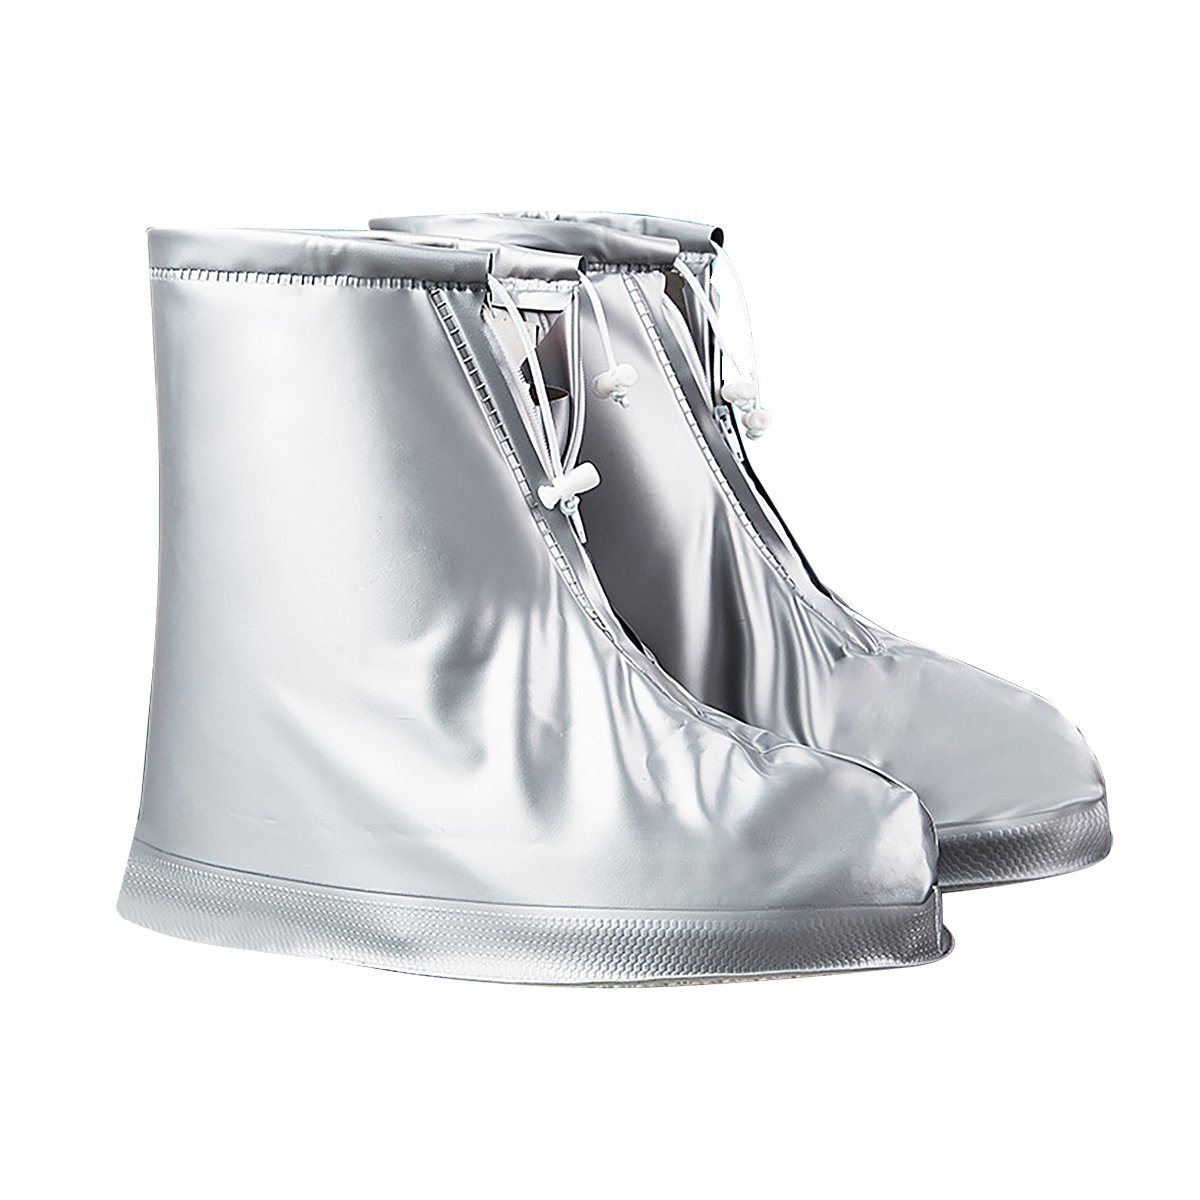 Silver-gray Men and Women Rain Boots Set Rainy Outdoor Rain Boots Travel Spare Waterproof Shoe Cover Easy to Carry L 28.5cm-1 Double